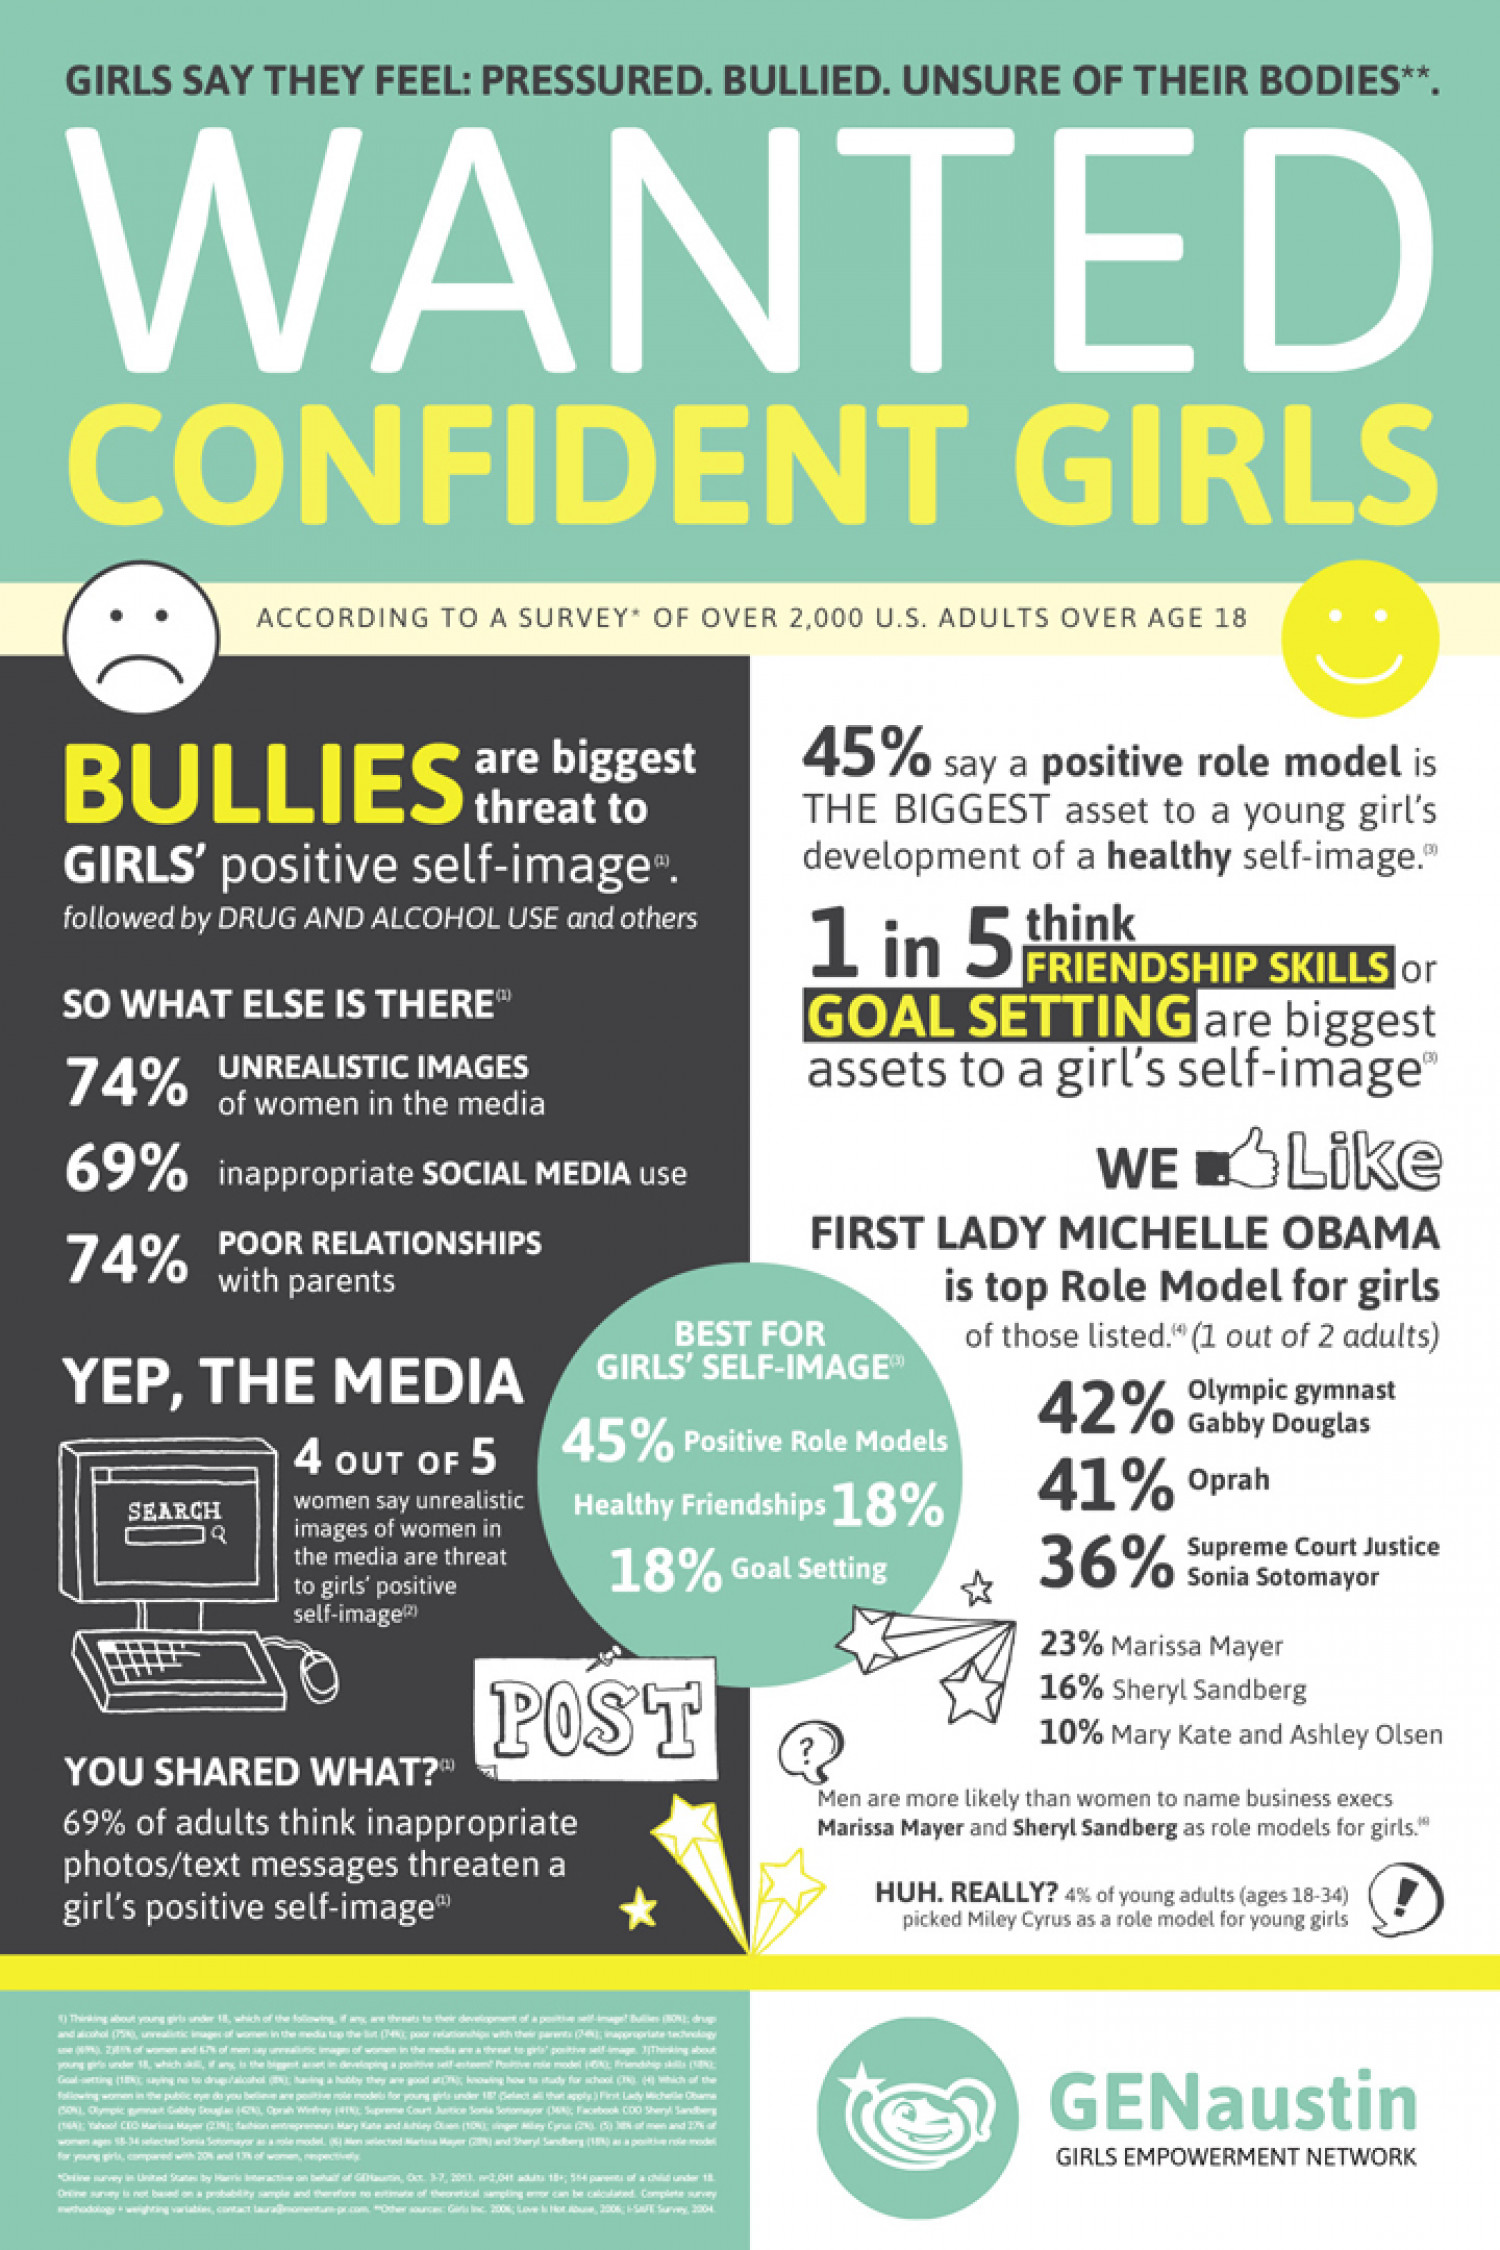 Wanted Confident Girls